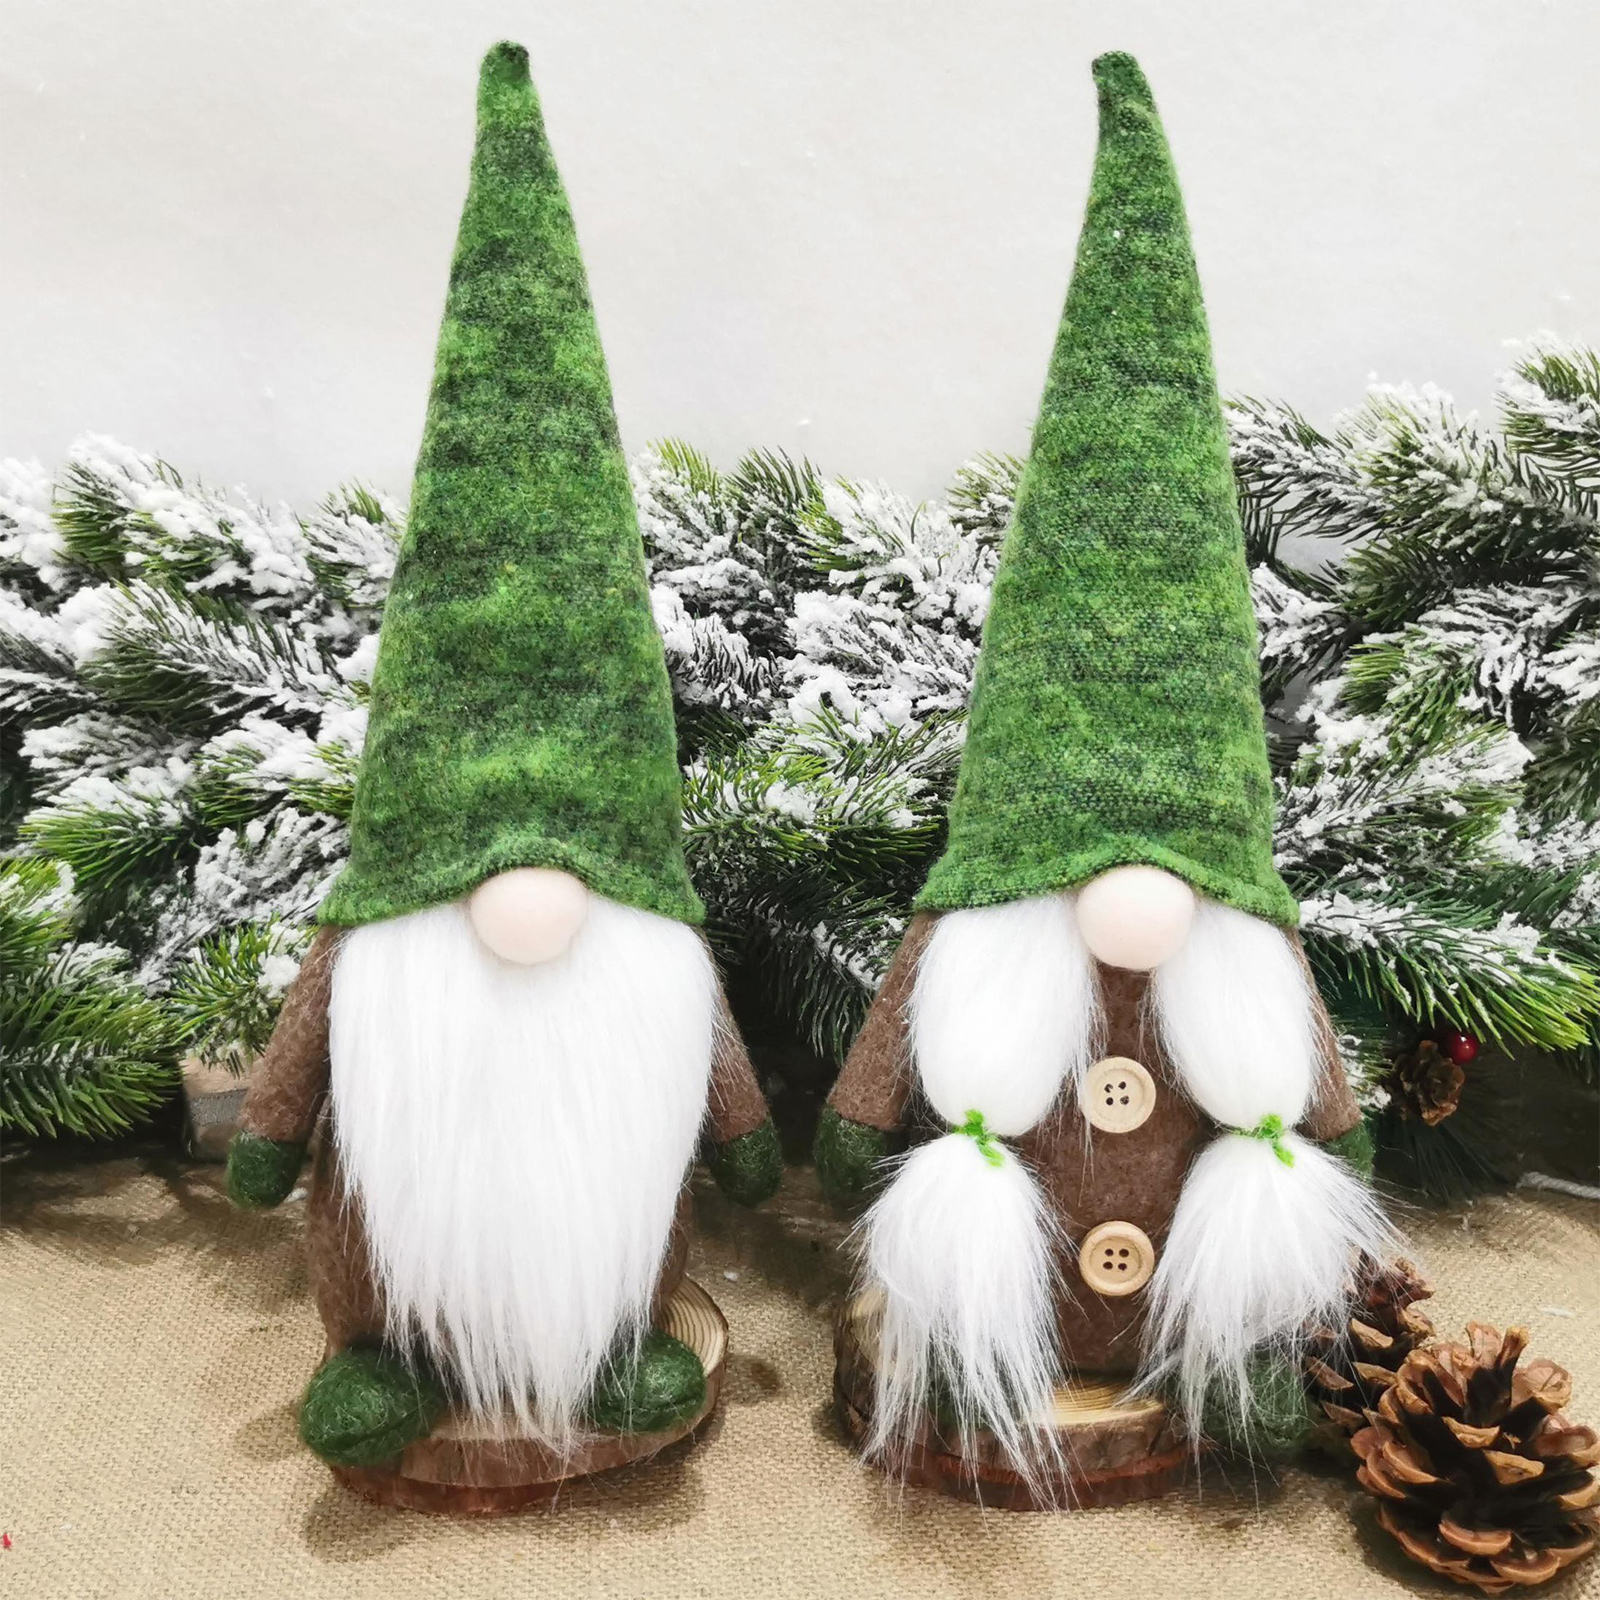 Christmas Gnomes Plush Handmade Swedish Tomte Santa Scandinavian Figurine Plush Elf Doll Gnome Ornaments Christmas Decorations